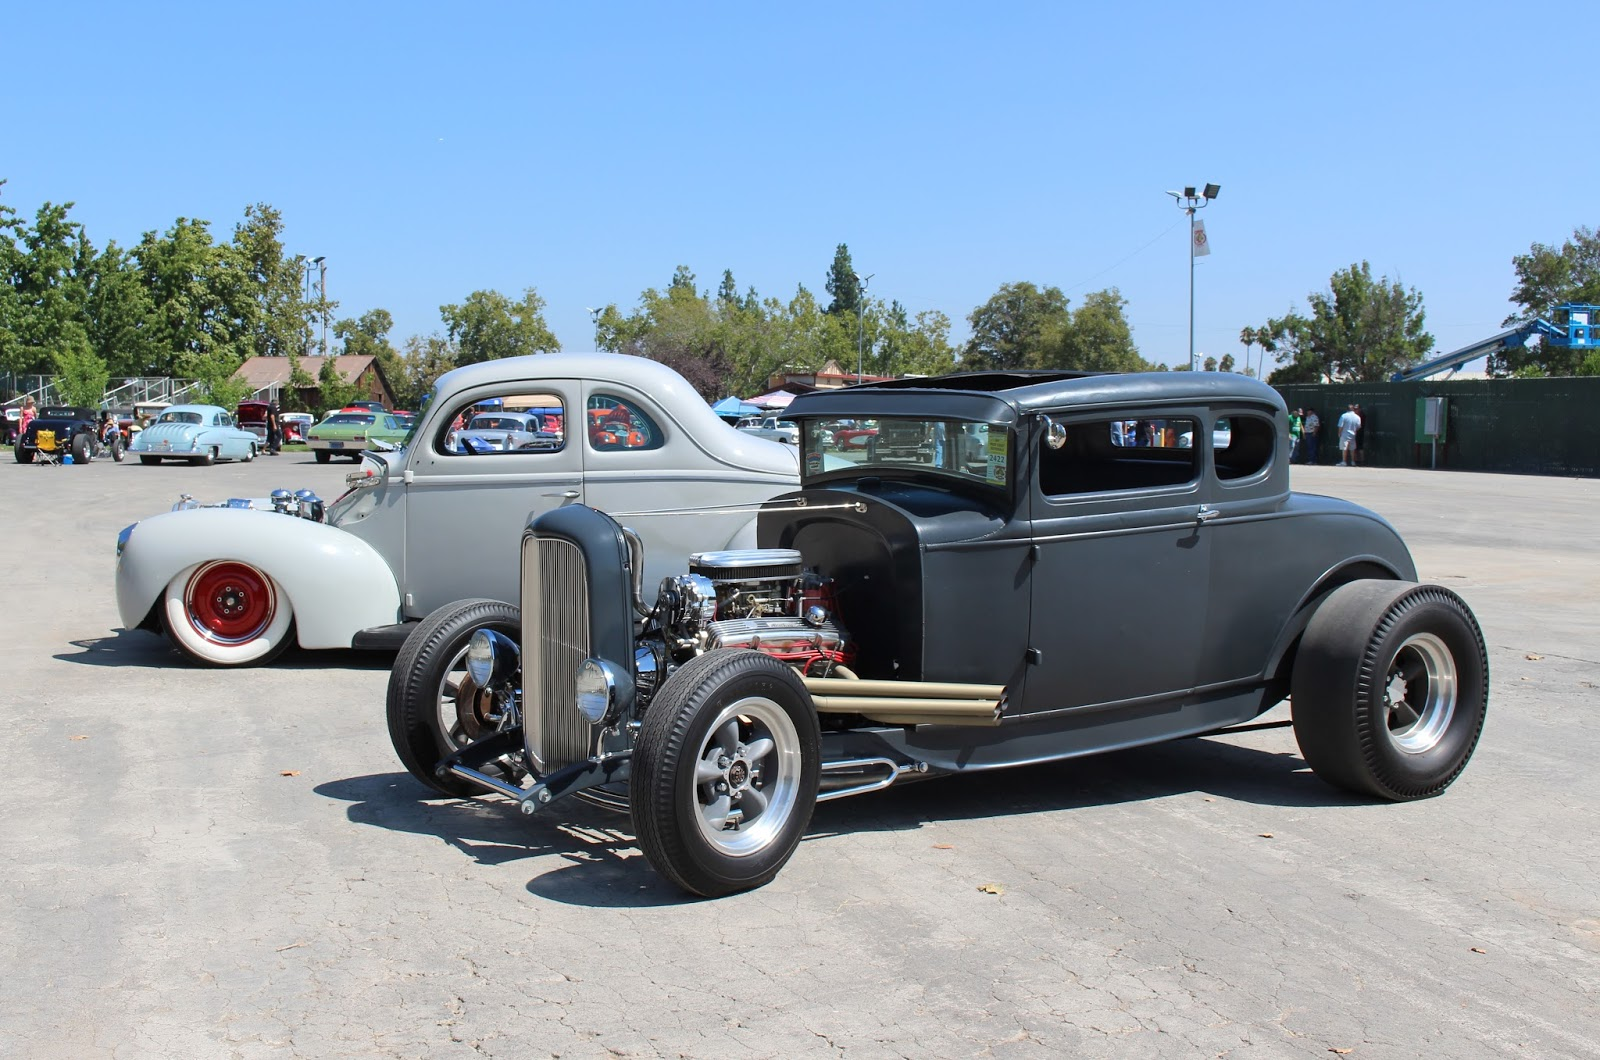 Covering Classic Cars : 29th Goodguys West Coast Nationals Car Show ...